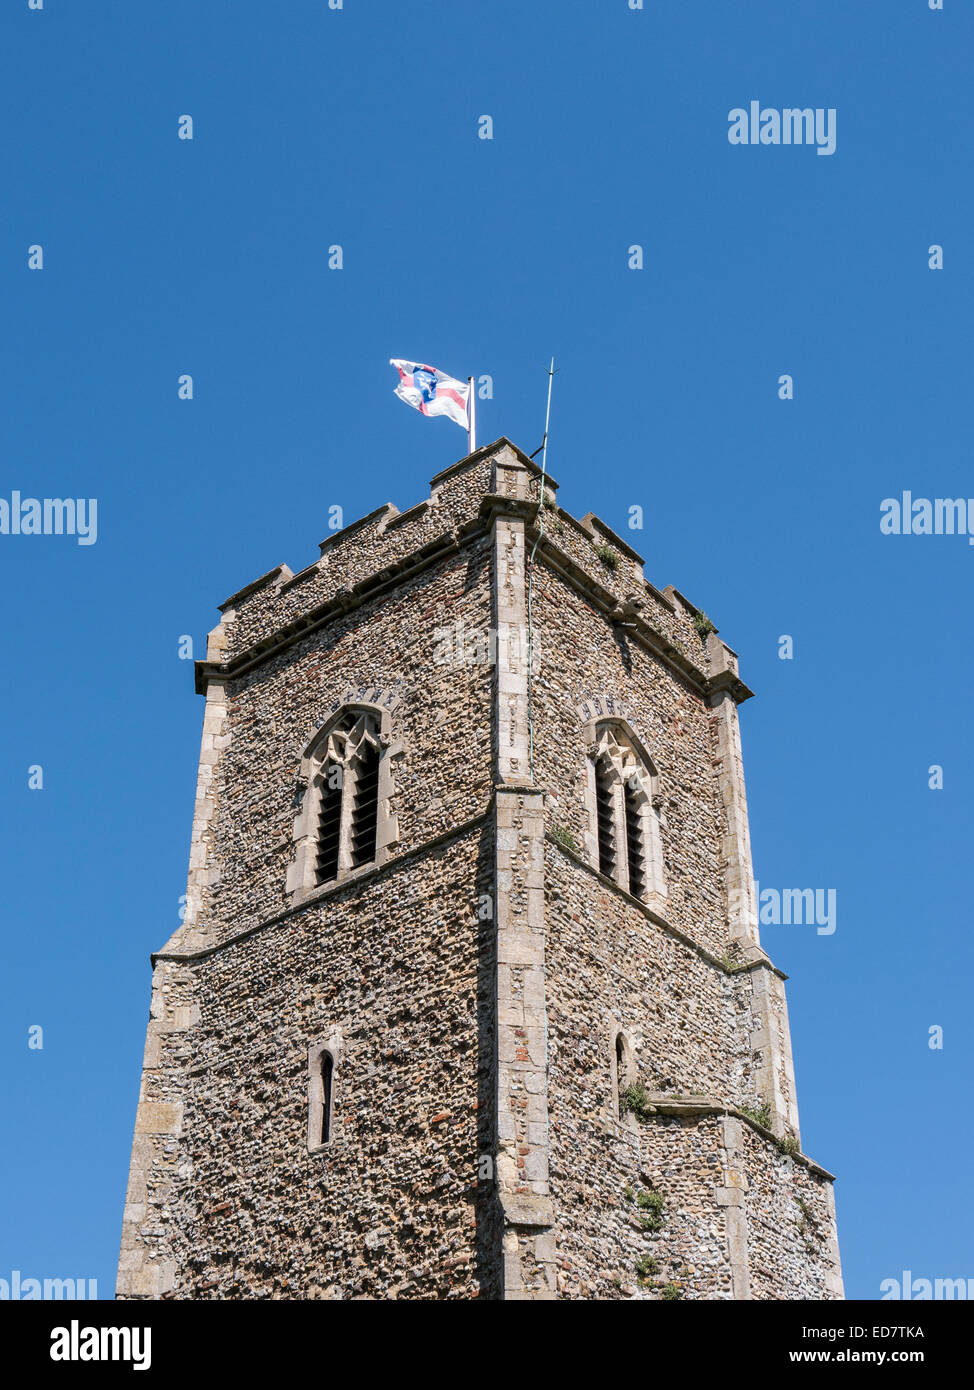 The tower of the Church of St Margaret of Antioch in the picturesque village of Shottisham, Suffolk. - Stock Image